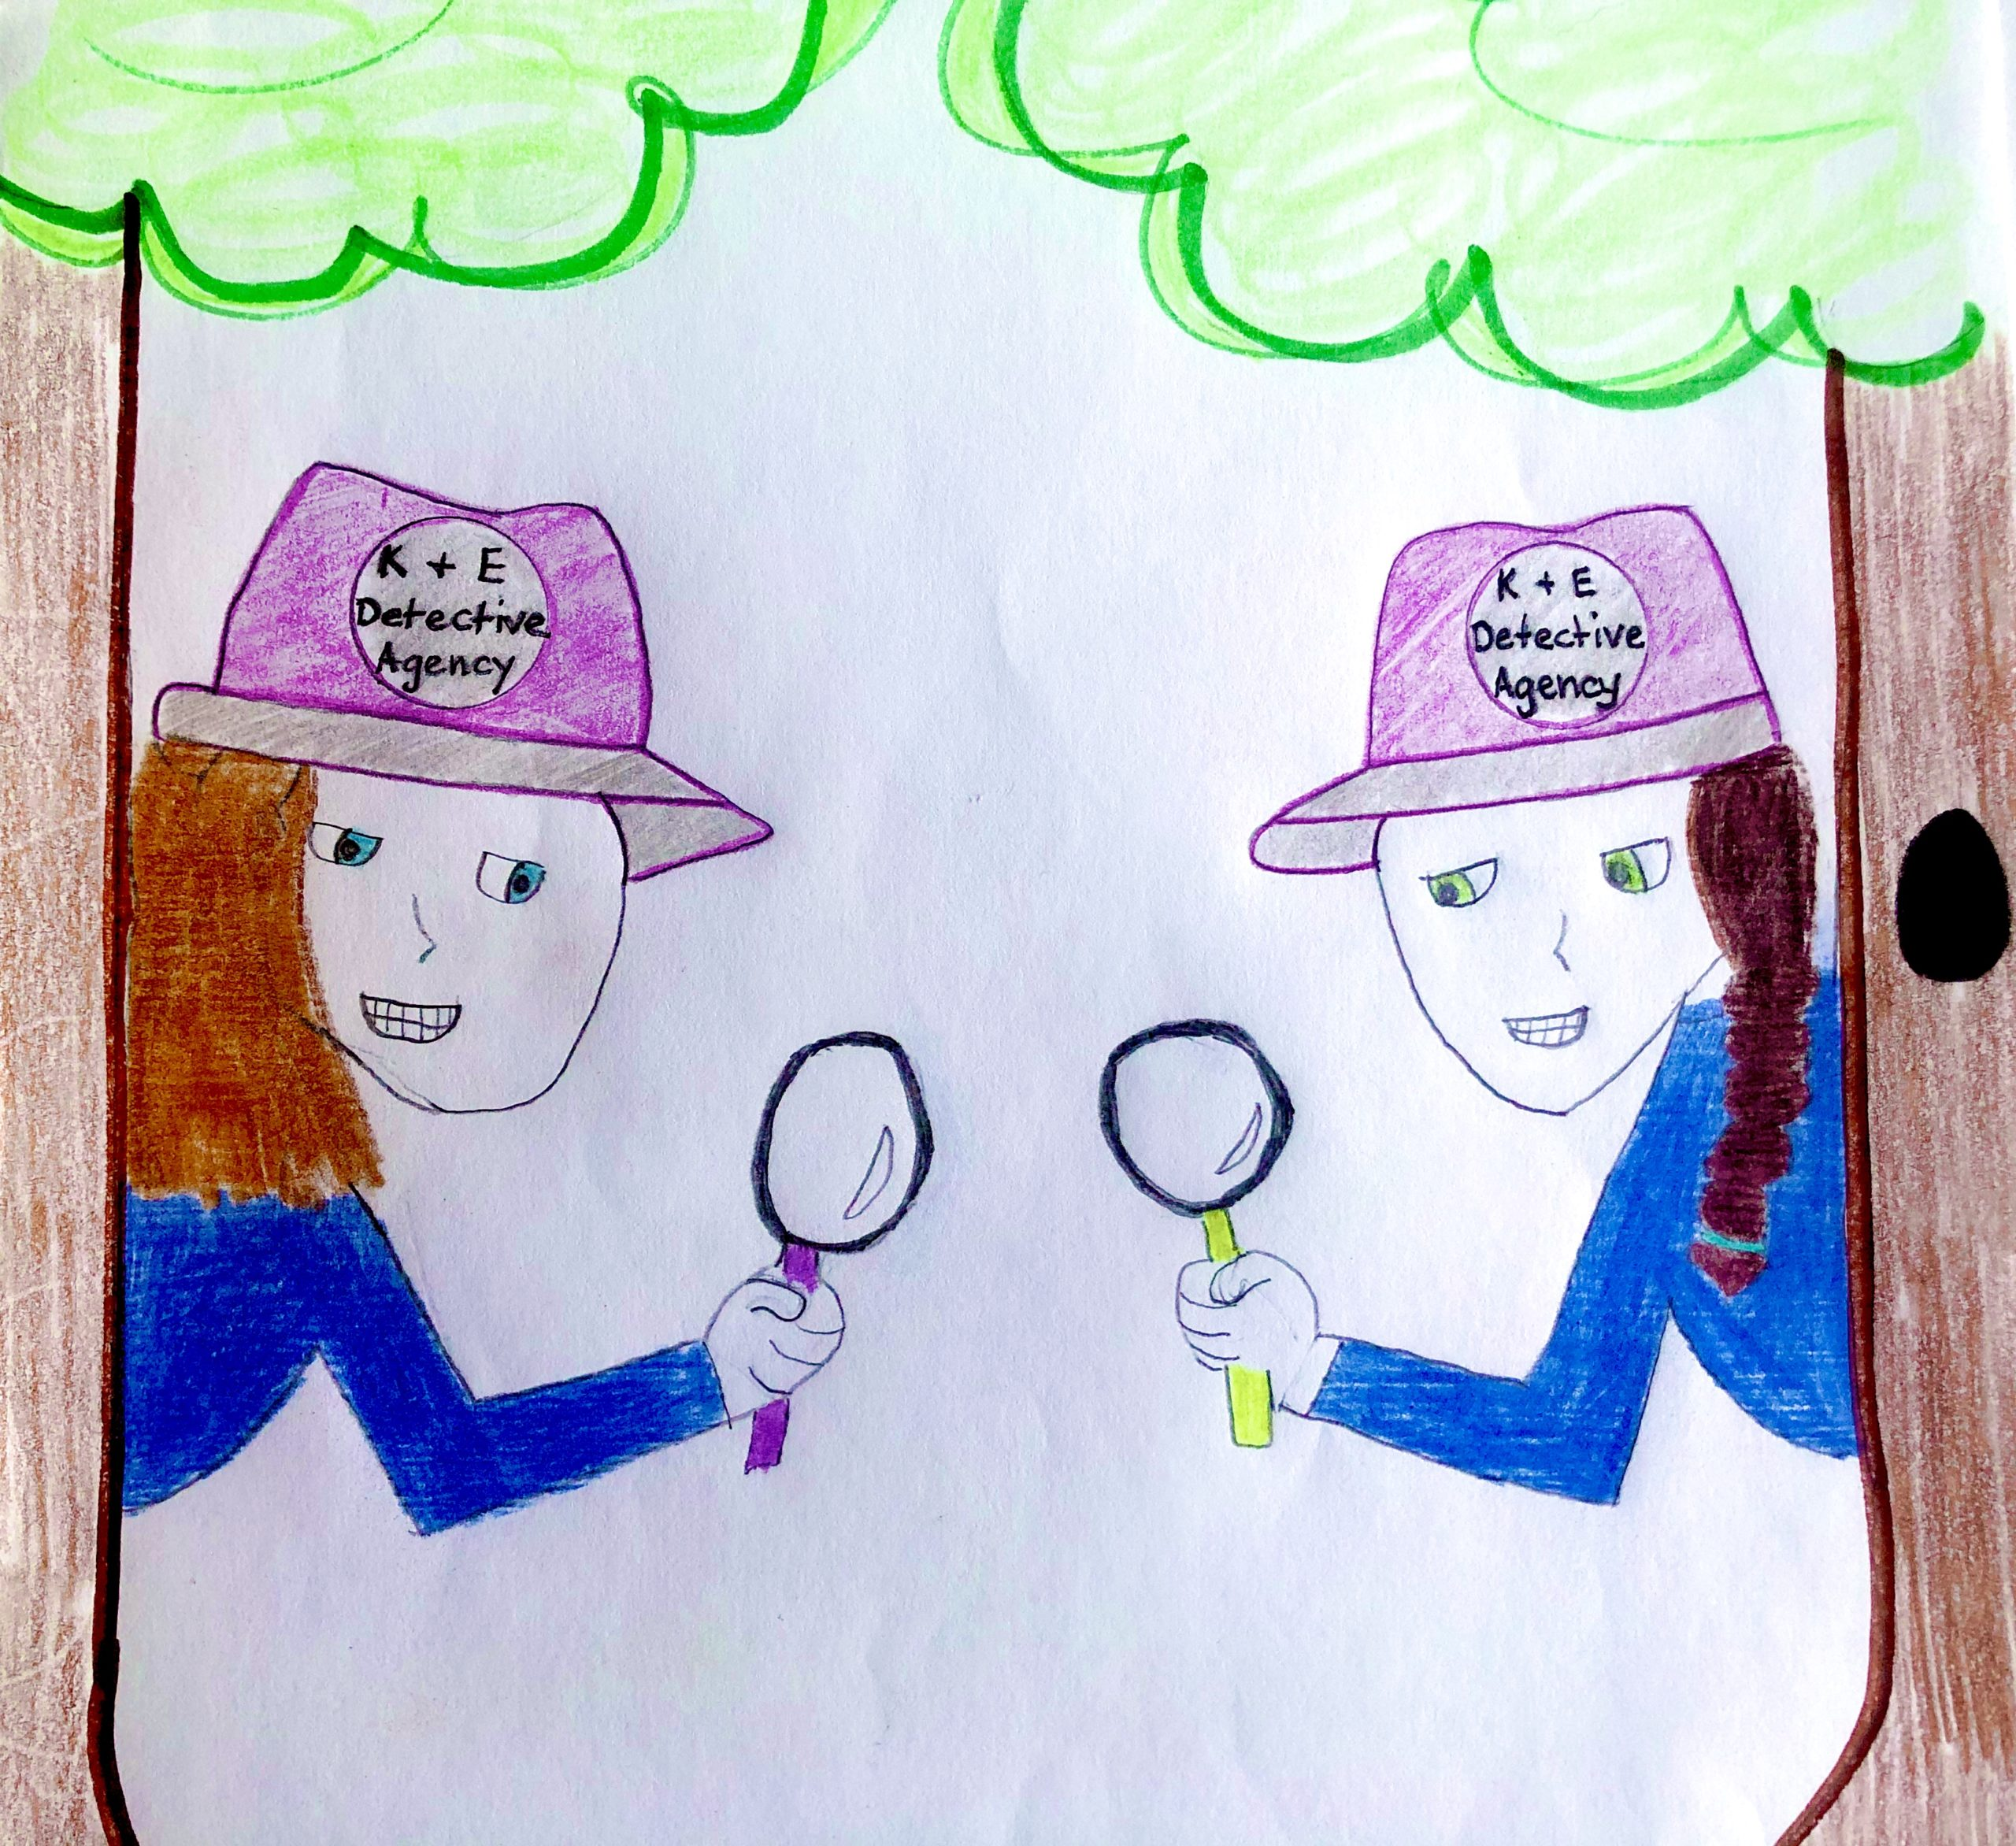 The Detectives Kinley and Ella hiding behind 2 trees with magnifying glasses in their hands. They're wearing matching blue, long sleeved shirts and purple detective hats with the logo K & E Detective Agency on it.